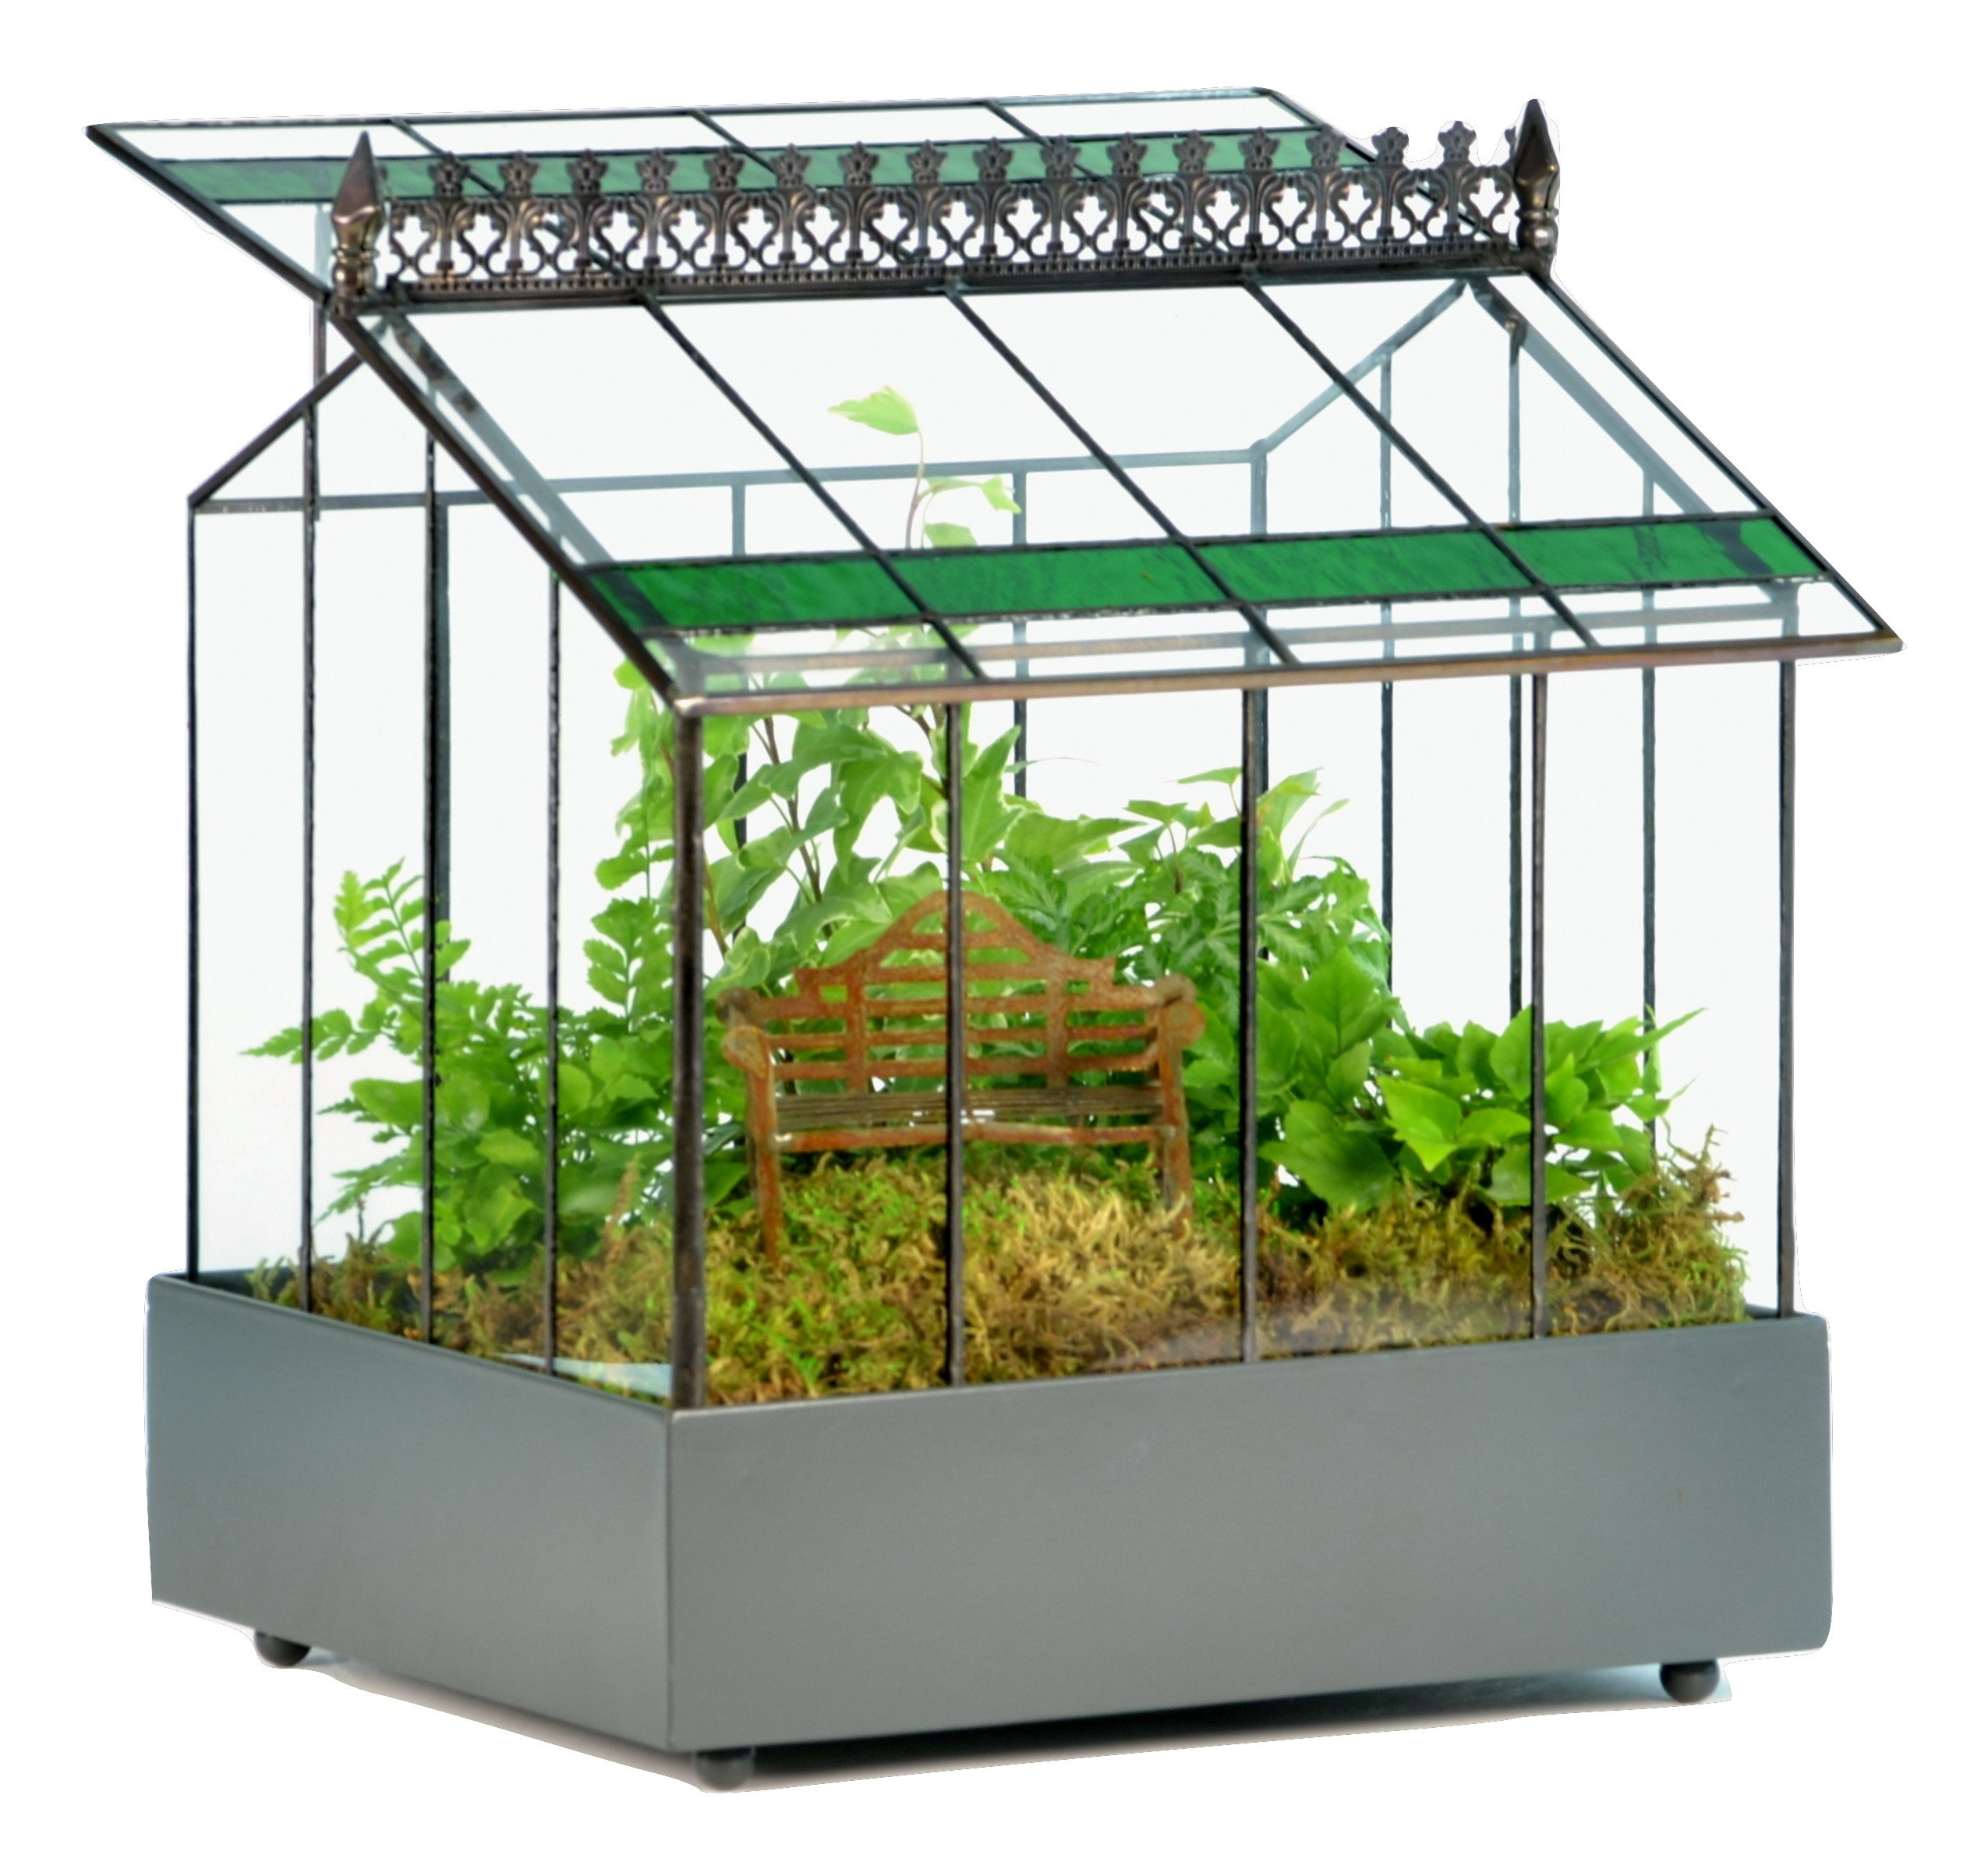 H Potter Glass Terrarium Case Planter – Wardian Container with Green Glass Accent for Succulents, Plants, Flowers, Orchids, Foliage & More